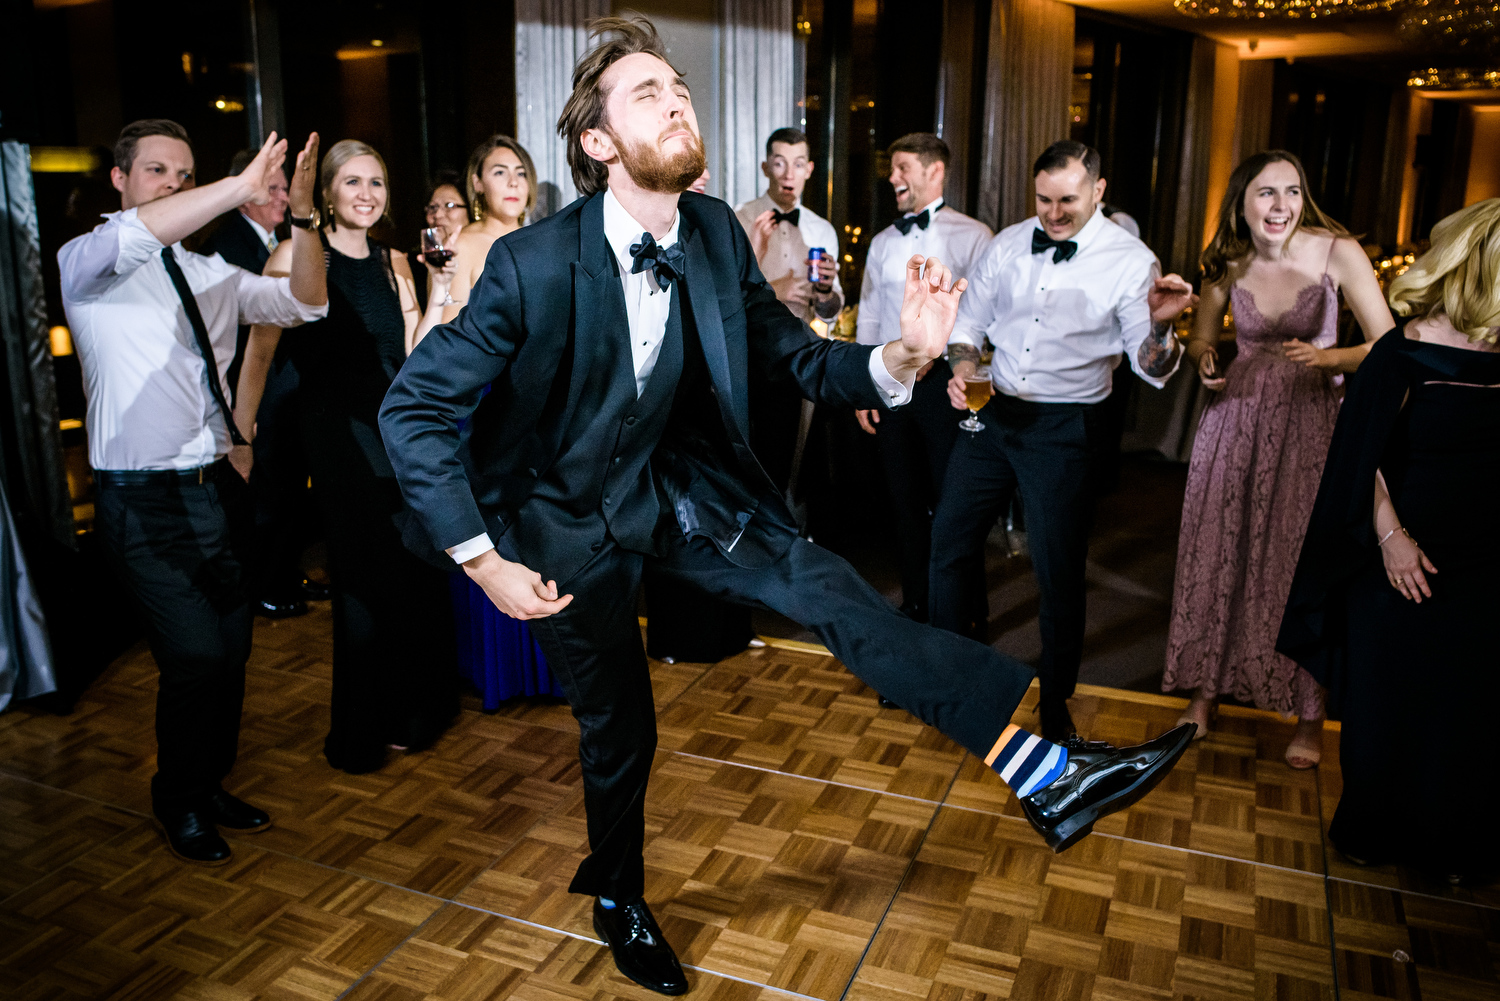 Funny dance floor moment during a Thompson Chicago wedding.